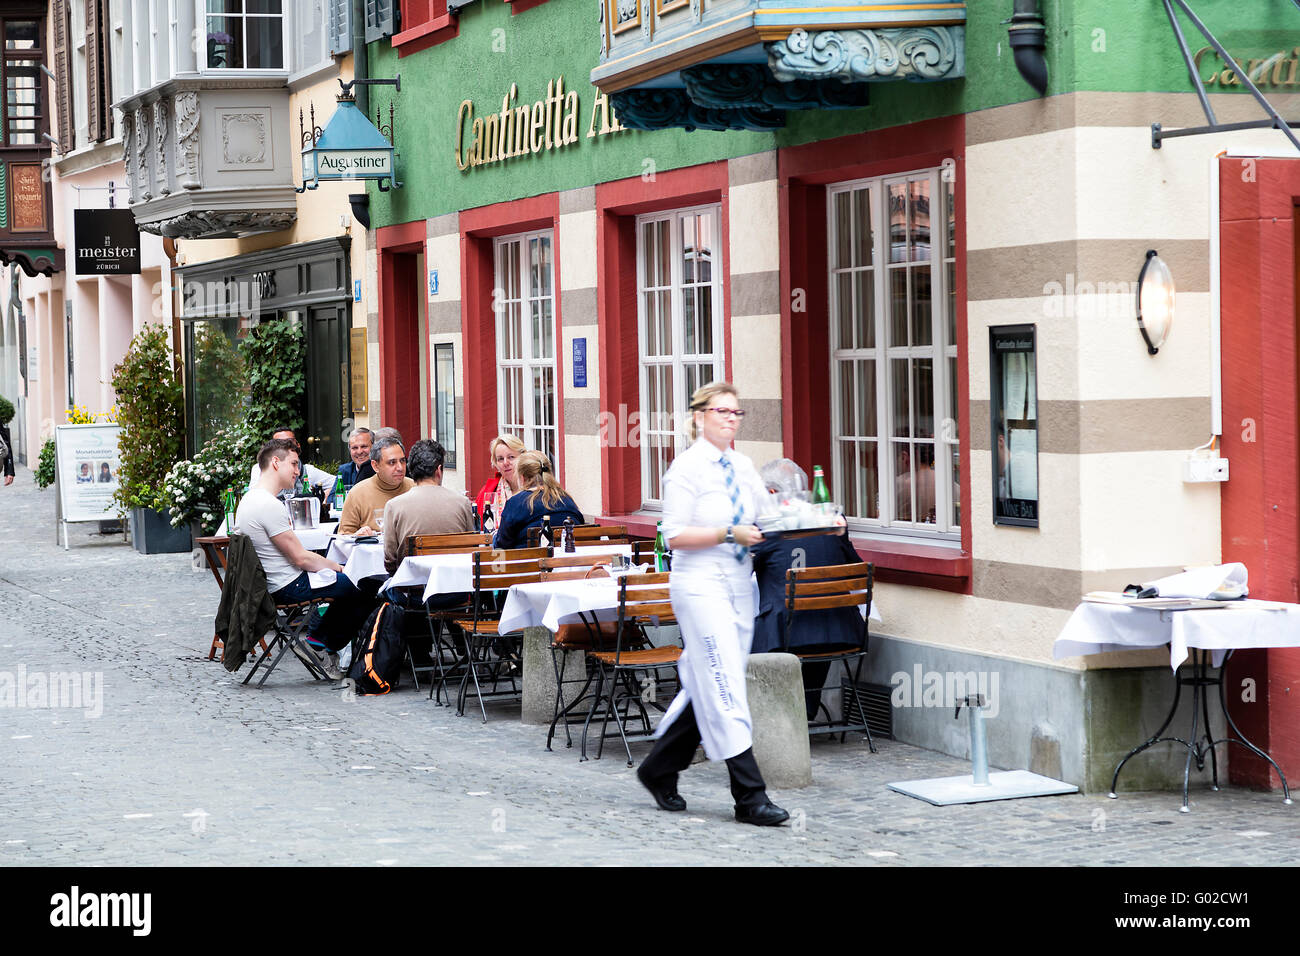 Restaurant in Zurich City, Switzerland - Stock Image